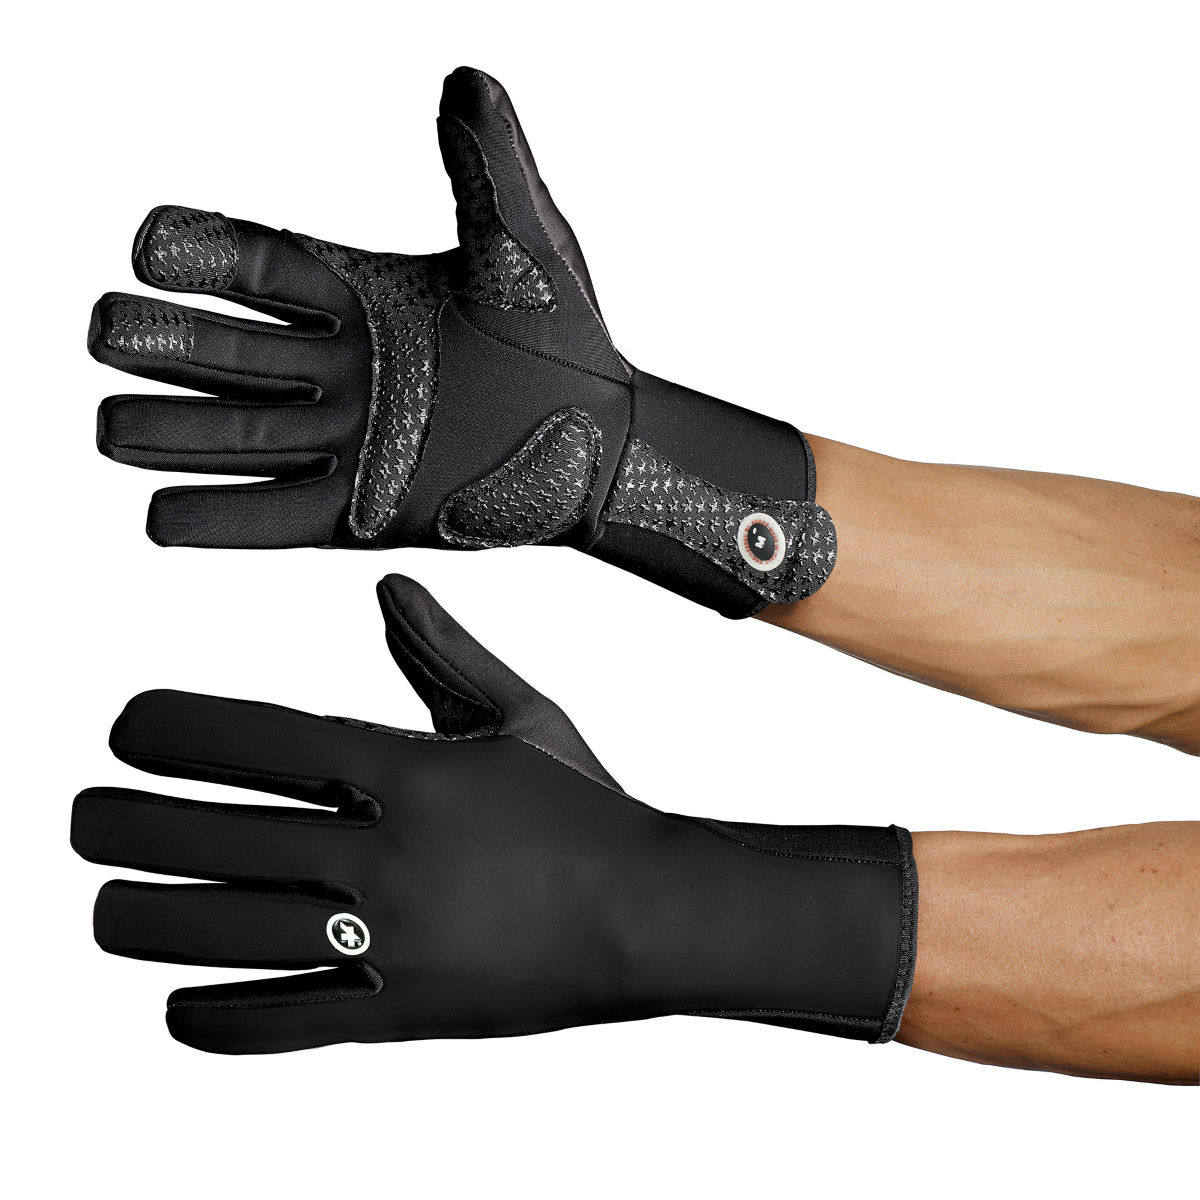 Gants Assos earlyWinter s7 - Extra Large Black Volkanga